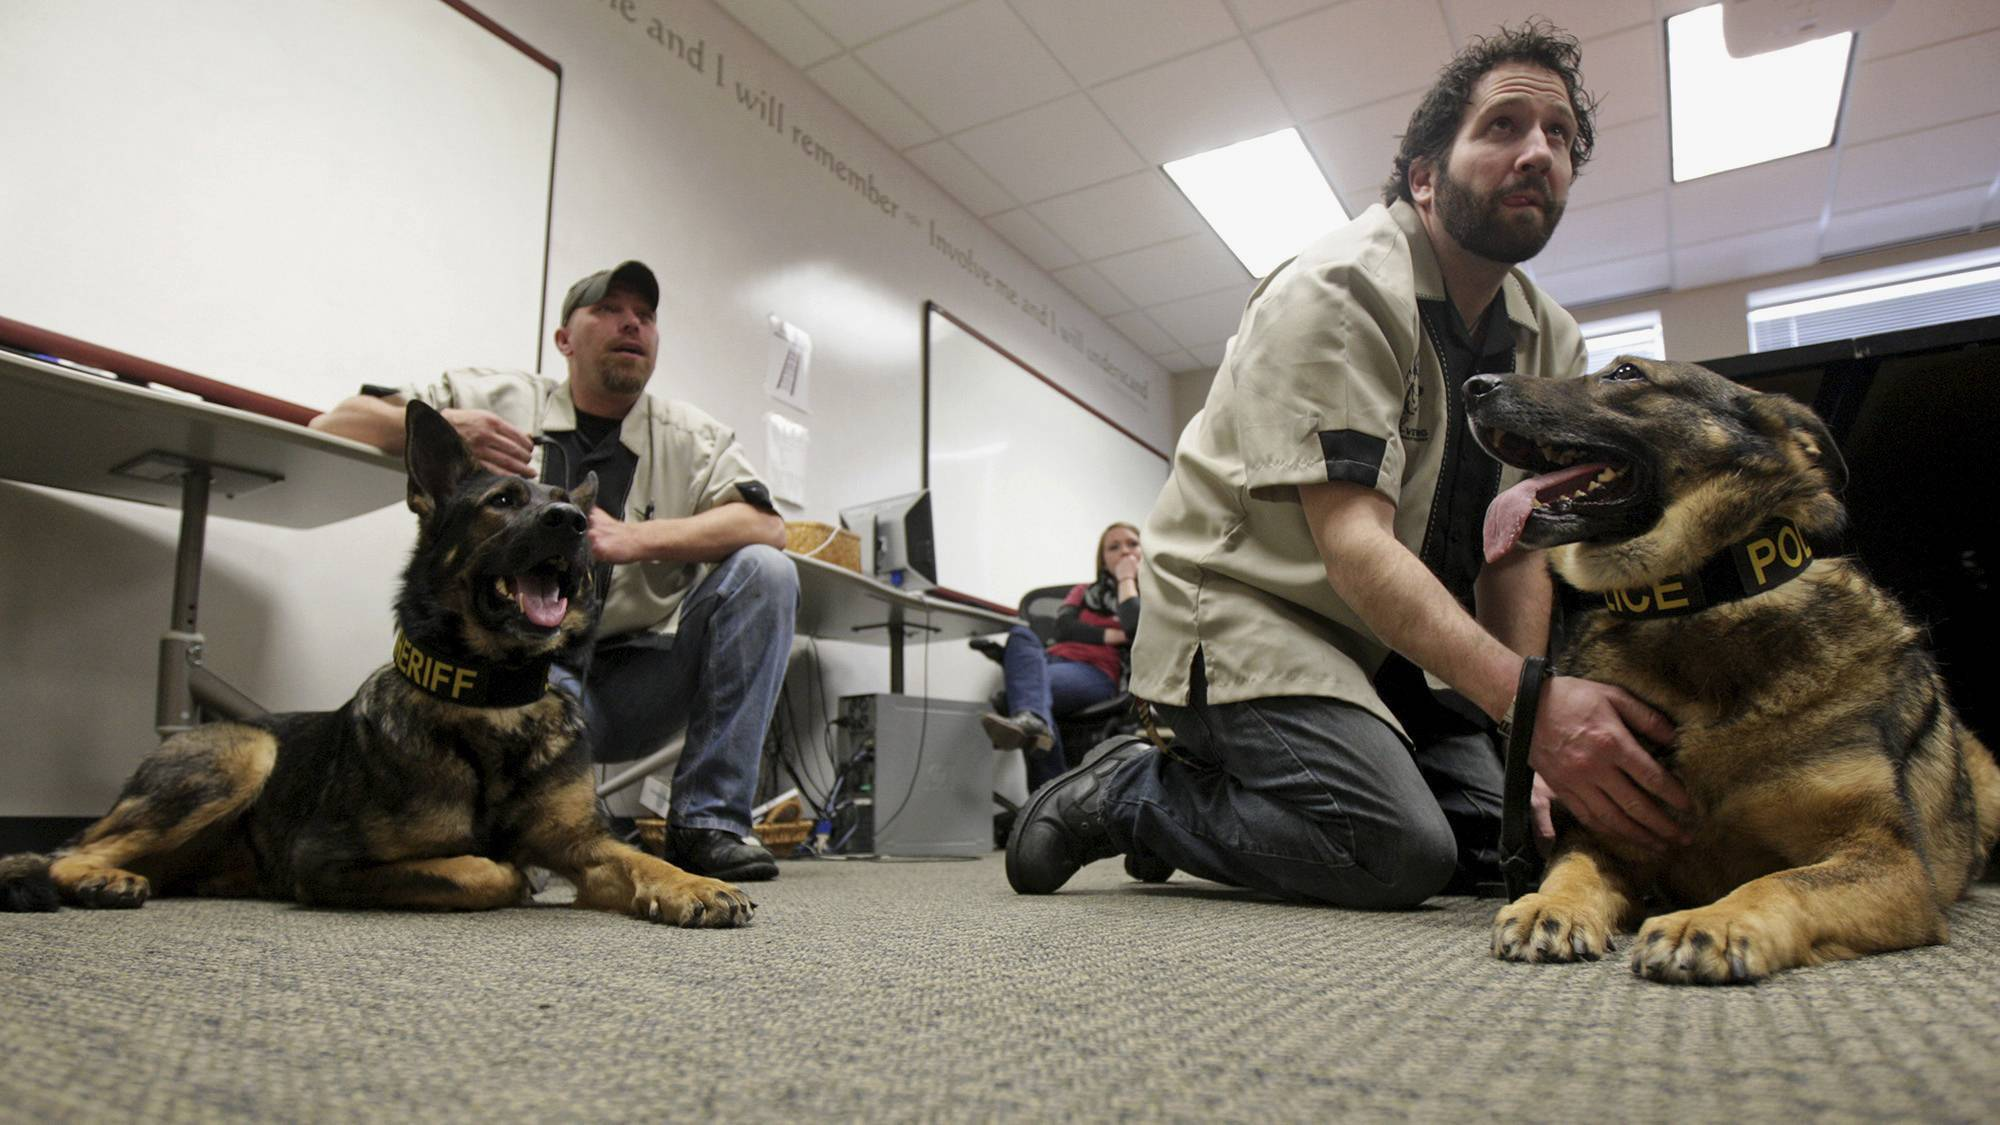 Laky, left, a retired Baltimore County Sheriff K-9, and Zander, a retired Massachusetts State Police K-9, relax with their respective handlers Dave Crawford and Kevin Finizio, both disabled Navy veterans, after a presentation given by Northern Illinois University students on the Save-A-Vet program in Dekalb.